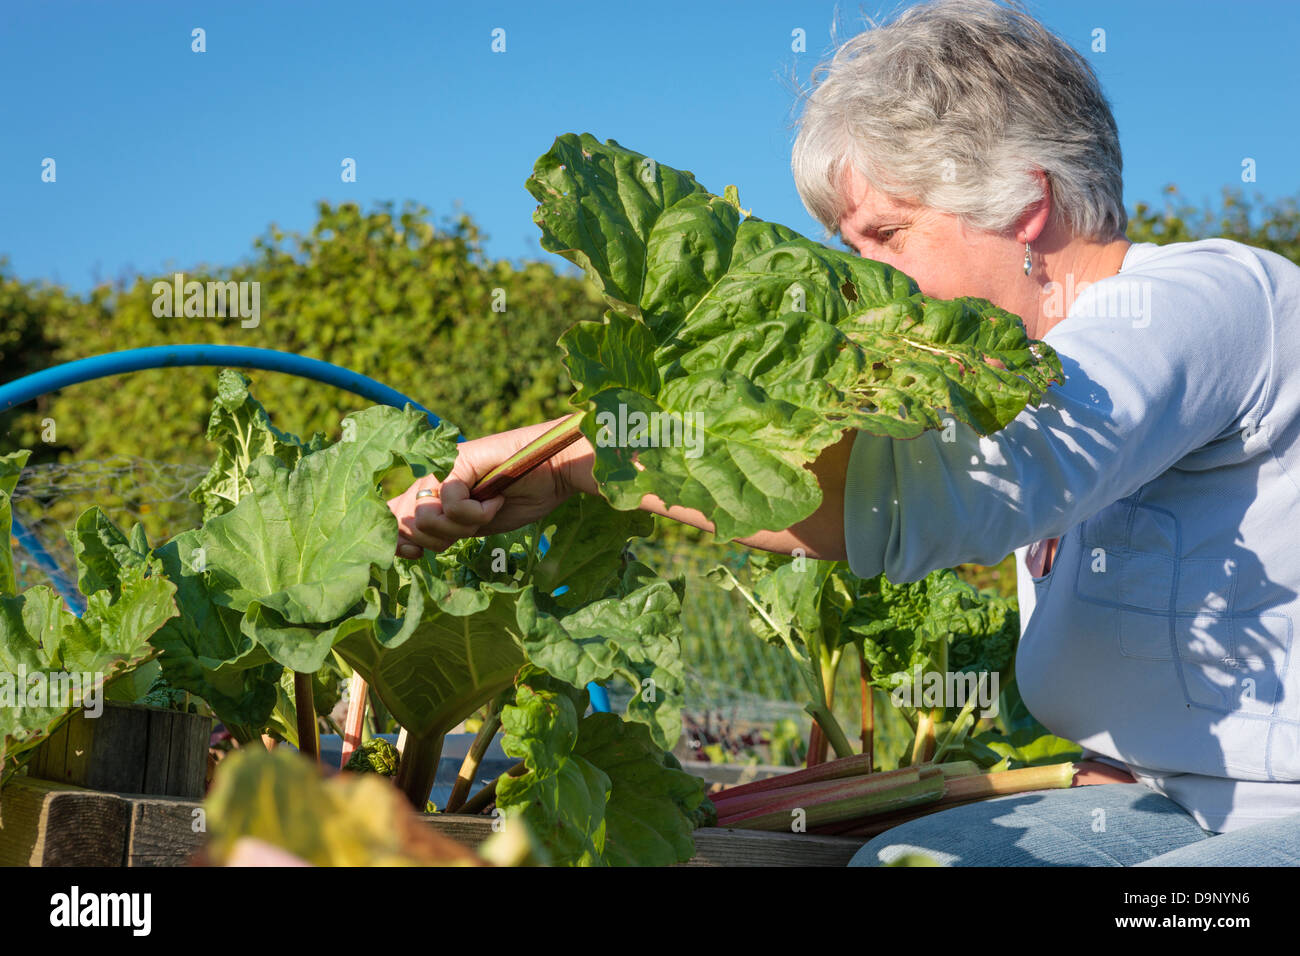 Picking rhubarb in the garden - Stock Image